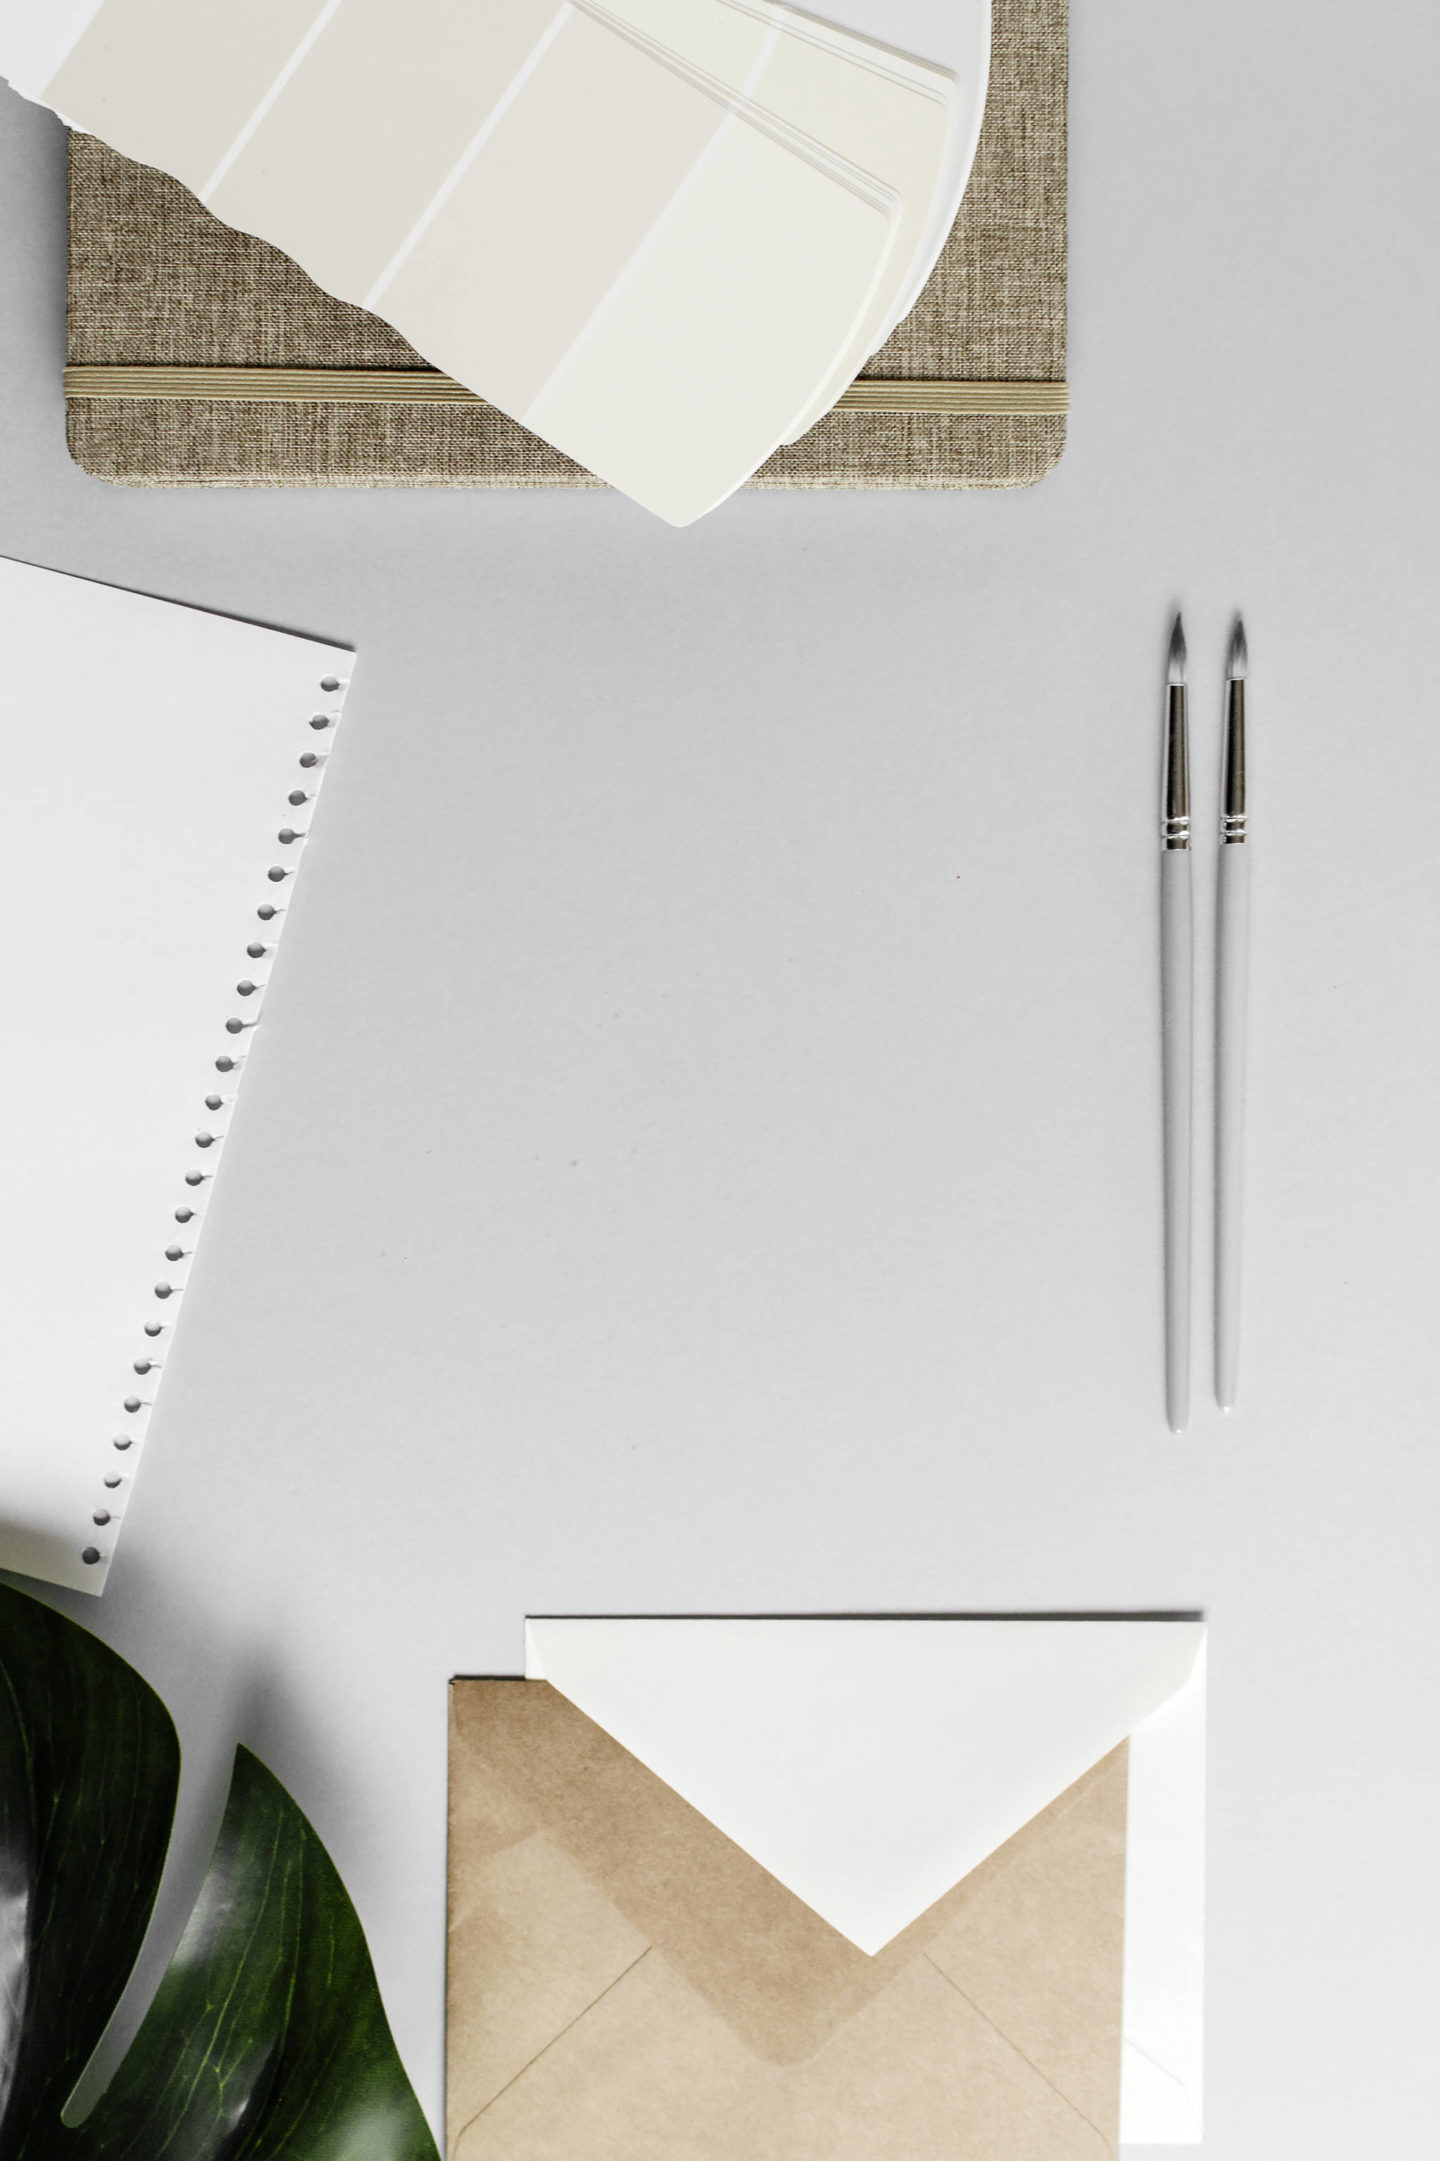 notepad and pens on desk